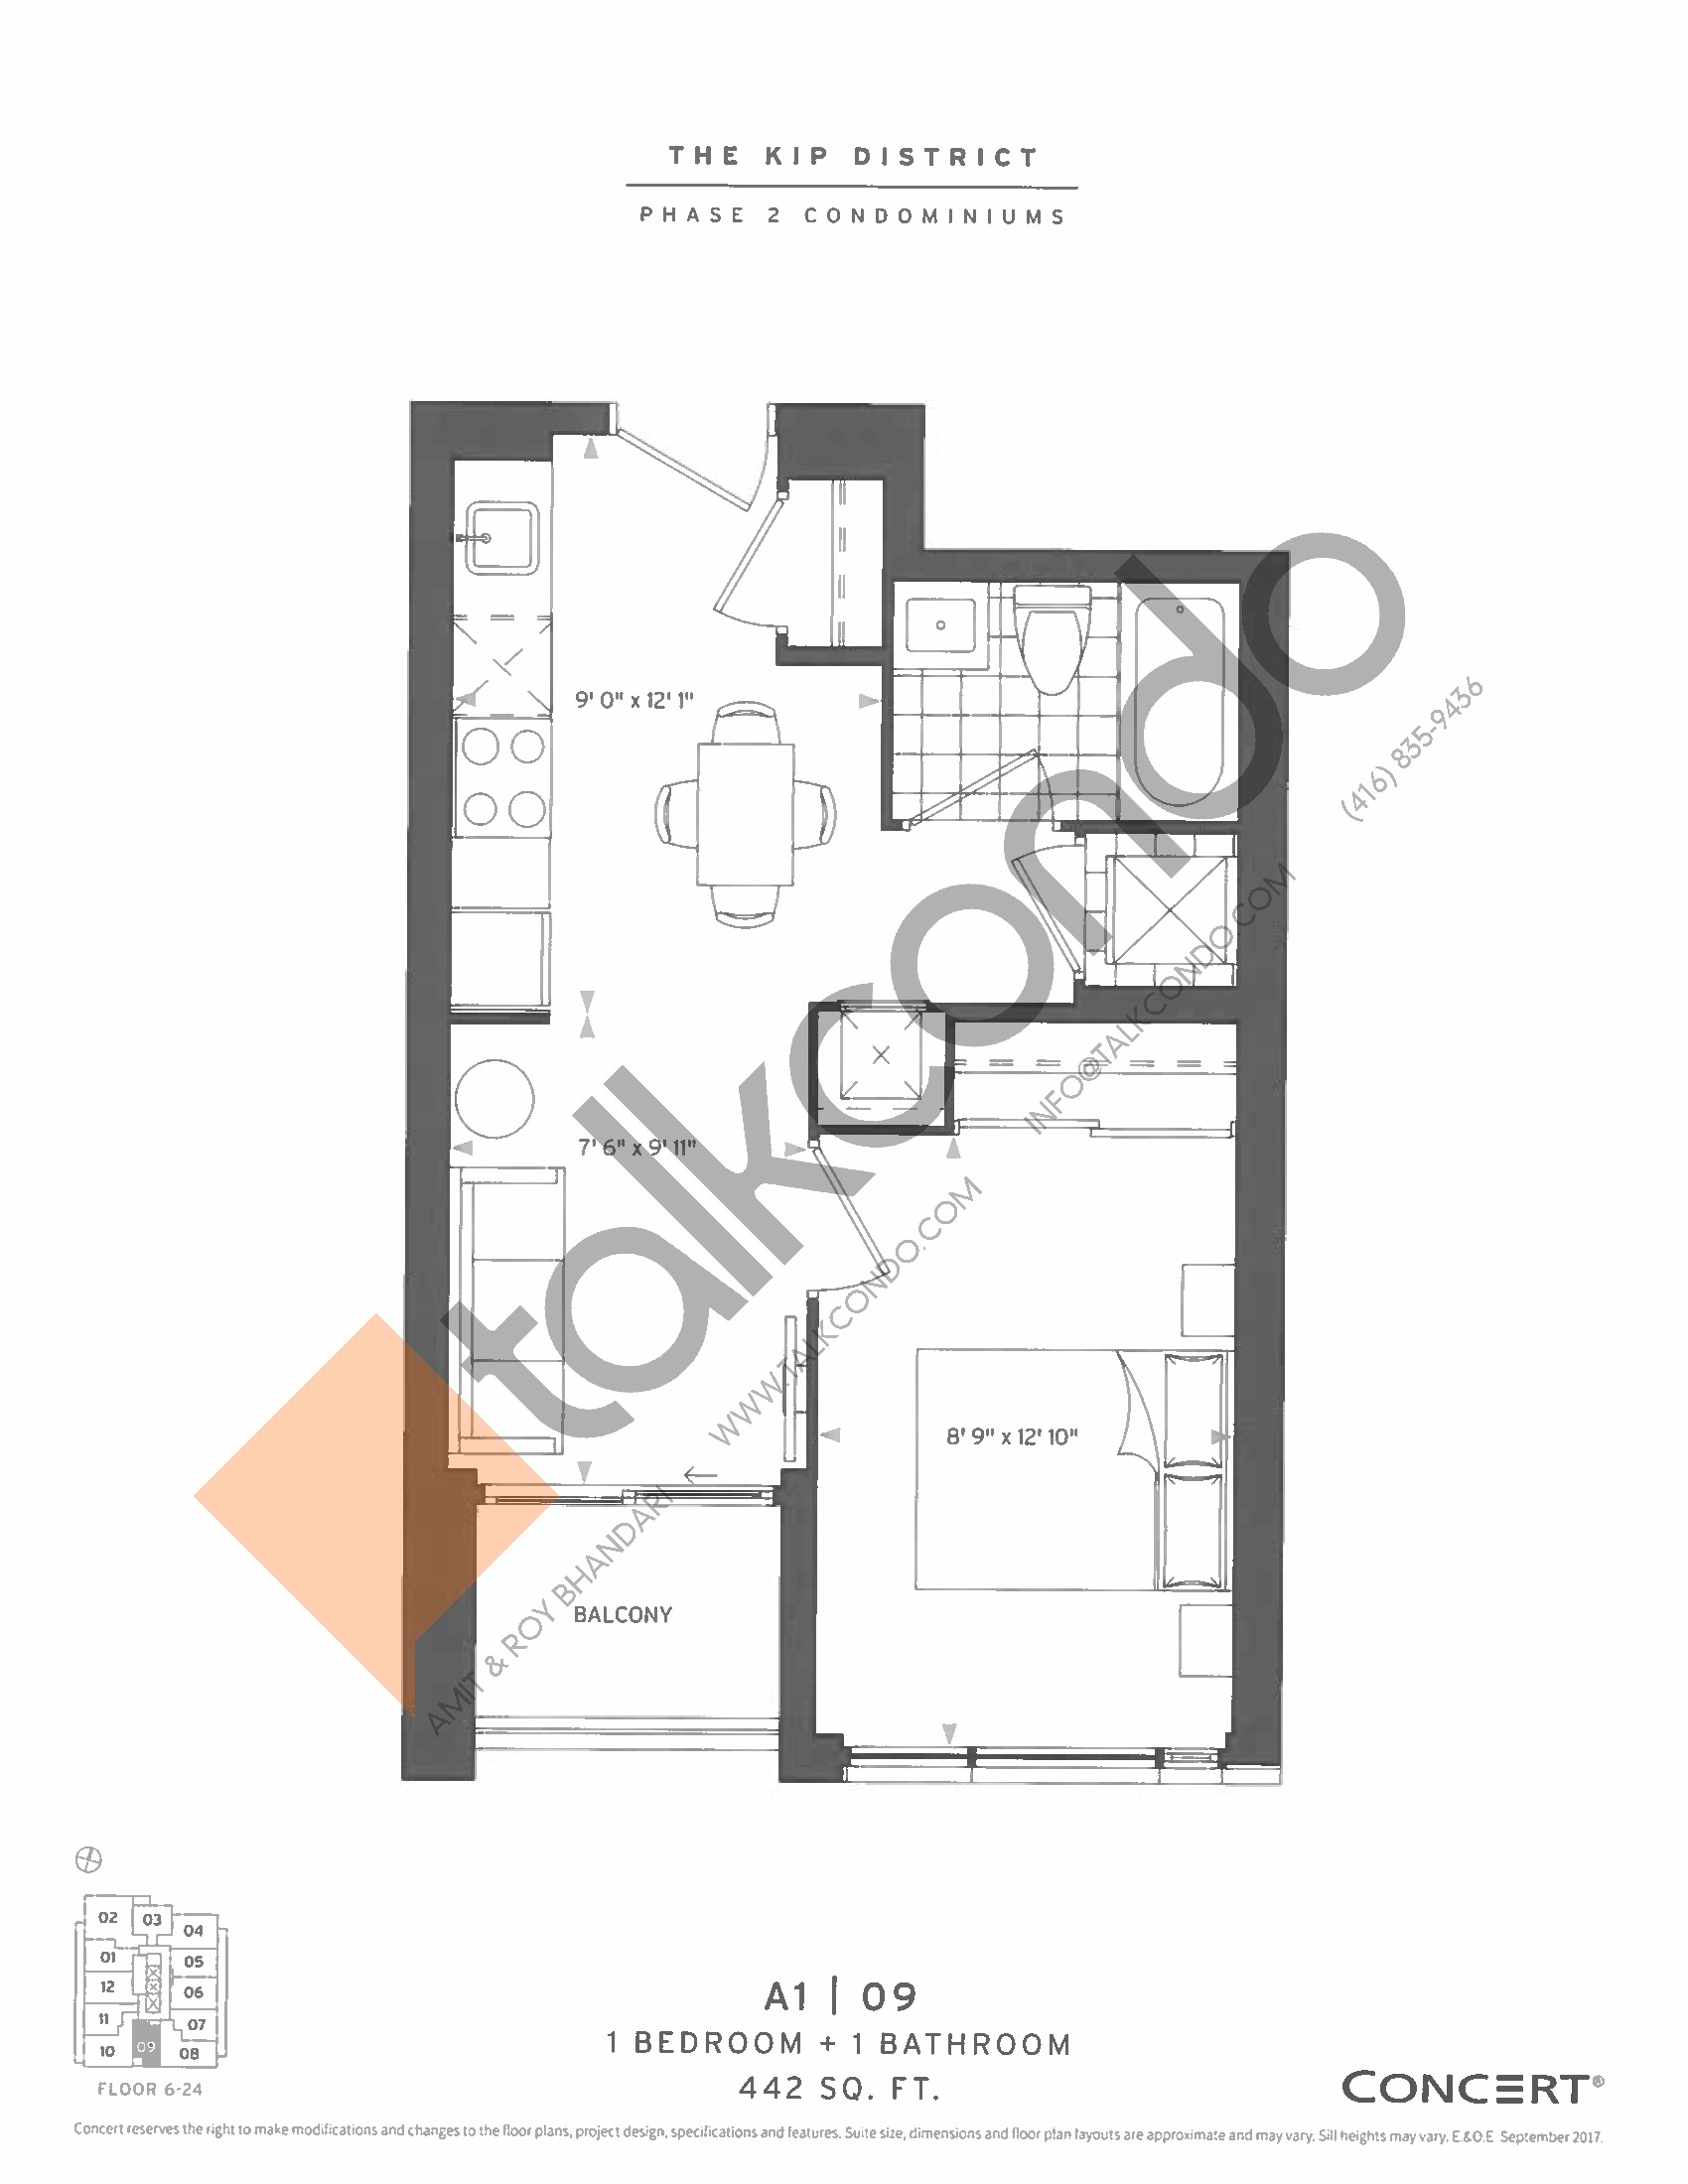 A1 | 09 Floor Plan at The Kip District Phase 2 Condos - 442 sq.ft